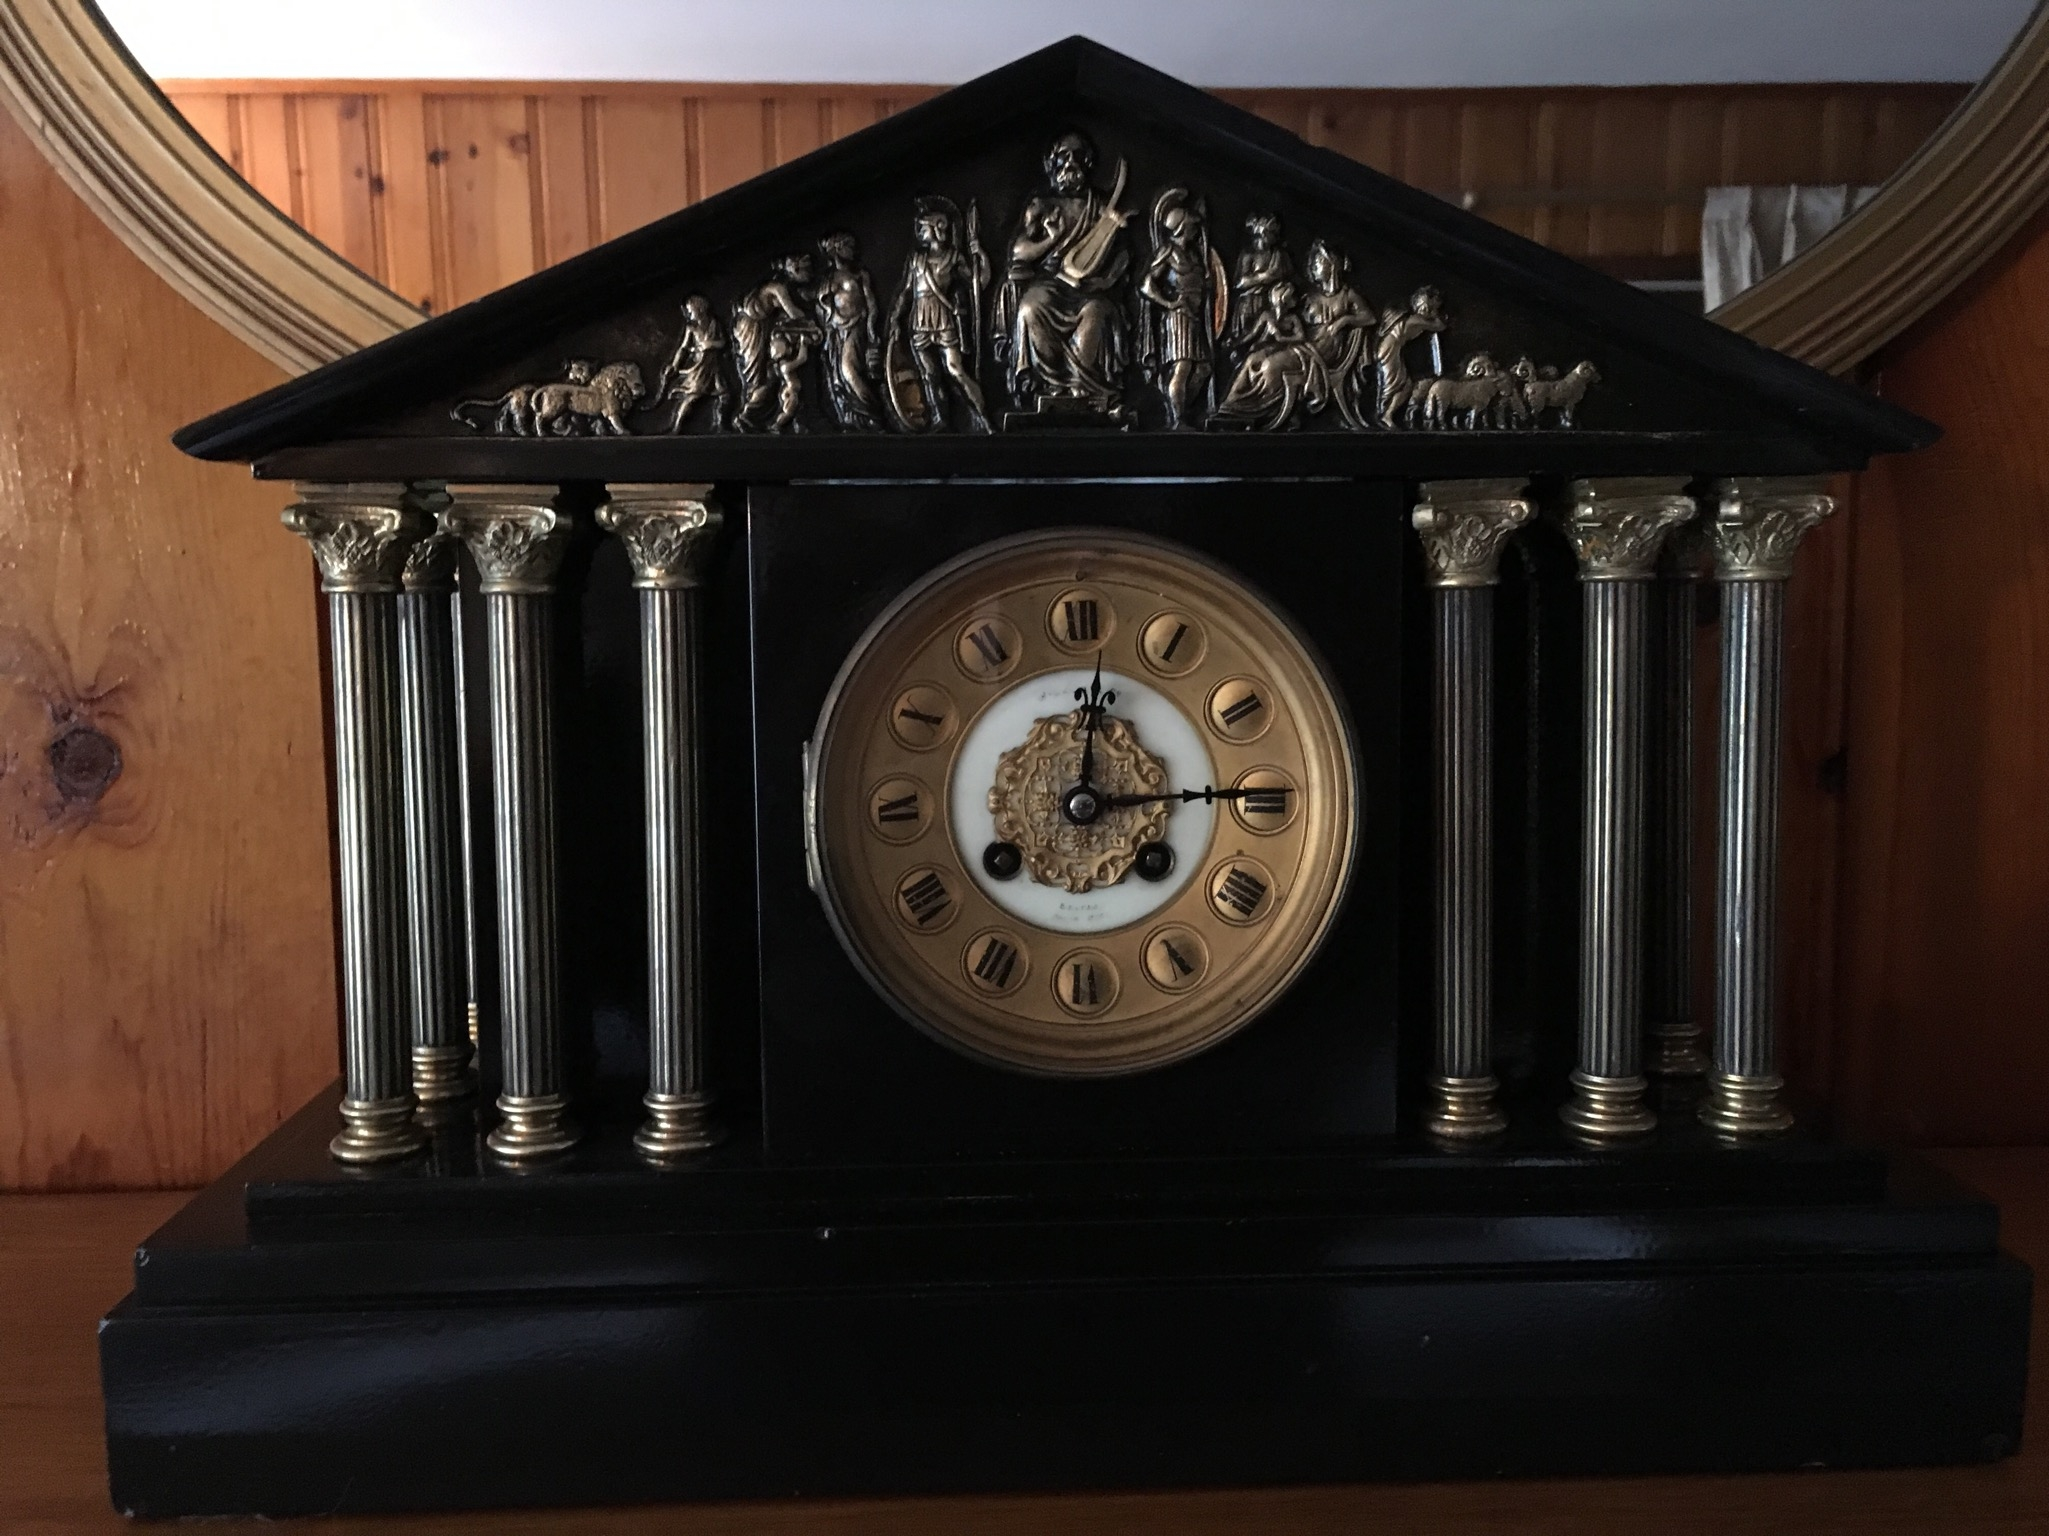 Antique clock restoration by maestro angelo - Coatesville, PA 19320 - (610)383-9787 | ShowMeLocal.com